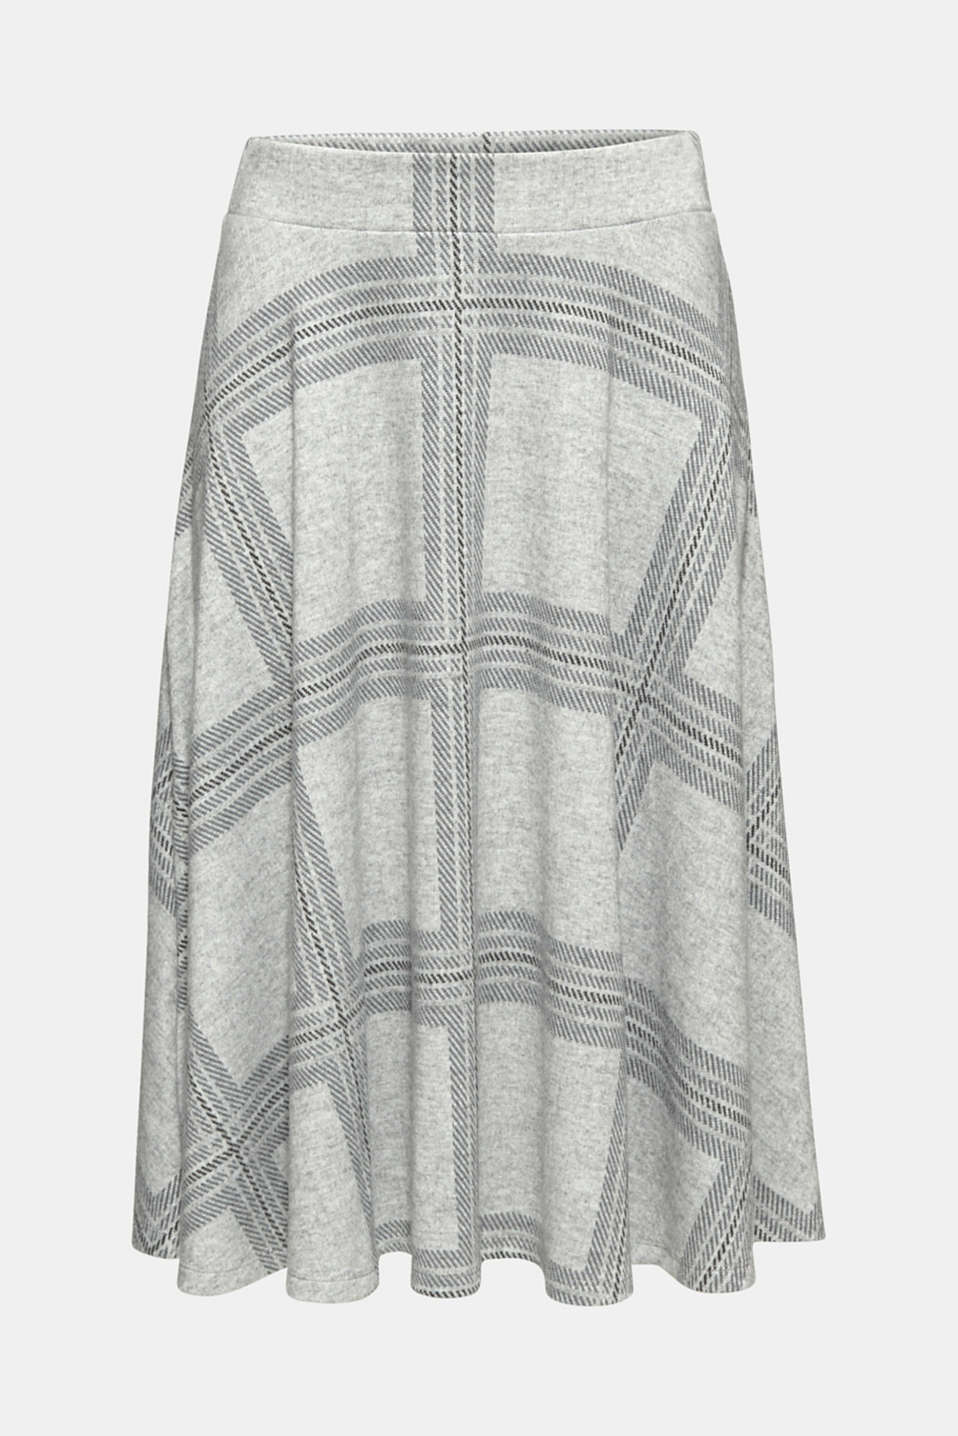 Fluffy jersey skirt with a check pattern, LIGHT GREY 5, detail image number 8